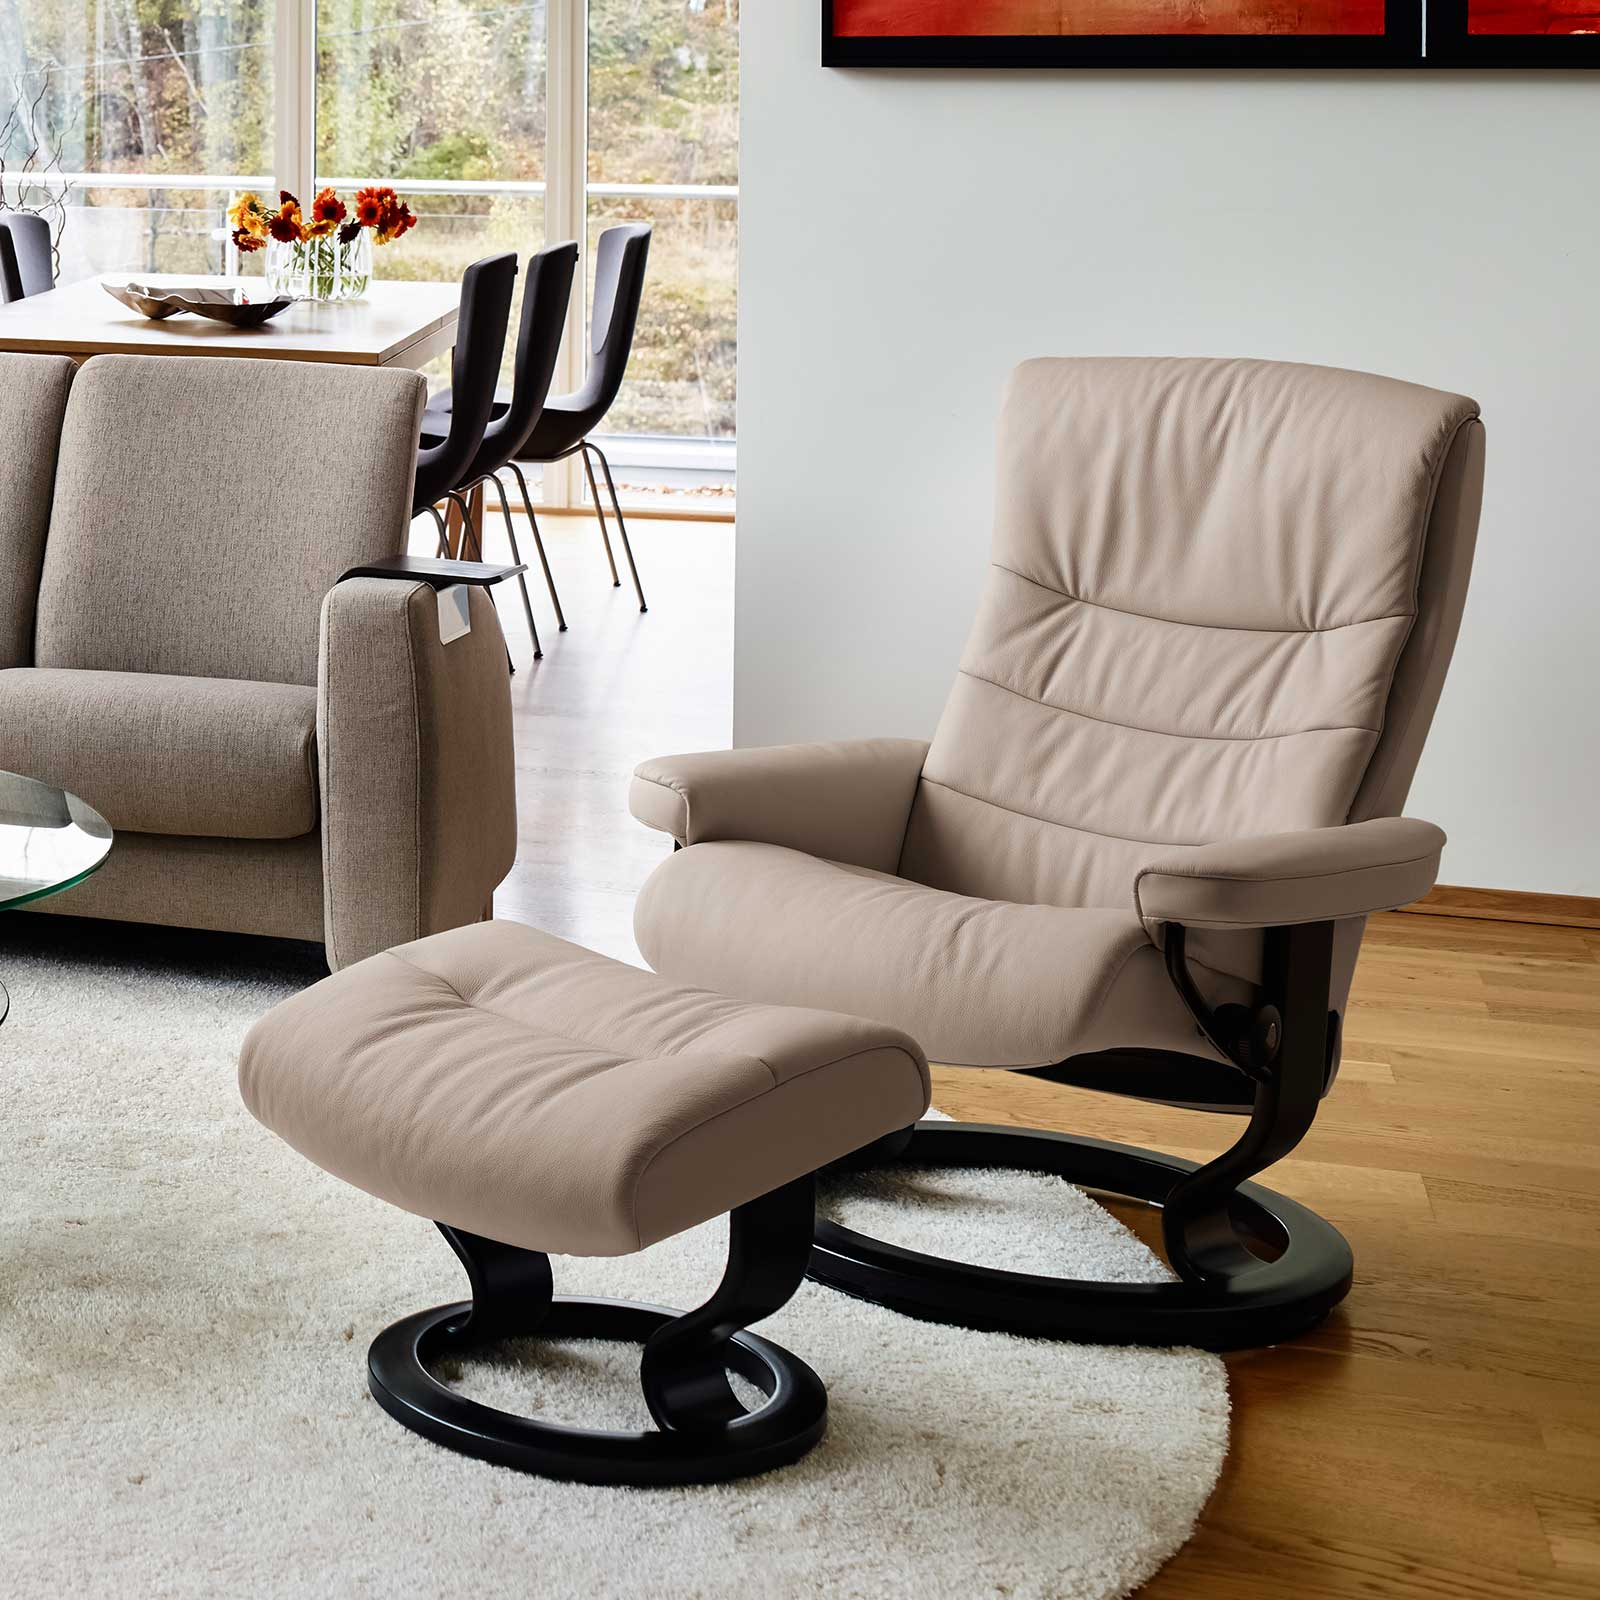 stressless sessel nordic cori beige mit hocker stressless. Black Bedroom Furniture Sets. Home Design Ideas